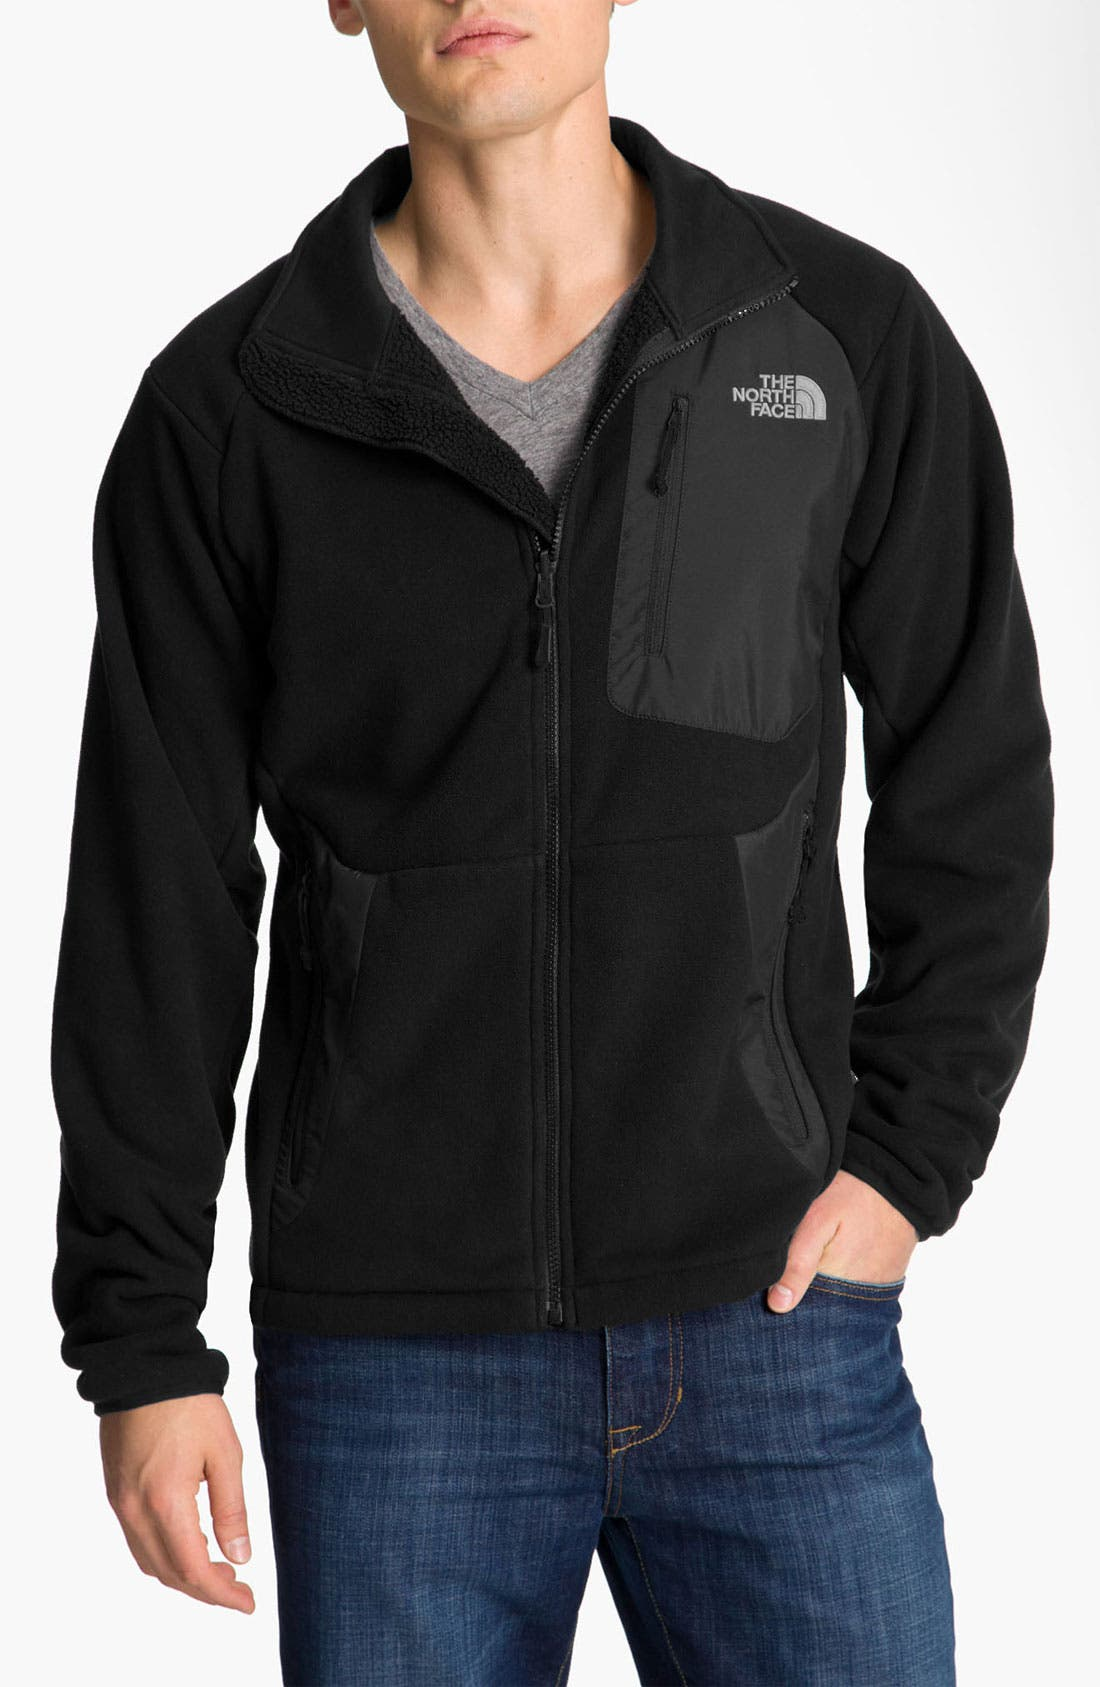 Alternate Image 1 Selected - The North Face 'Angile' Fleece Jacket